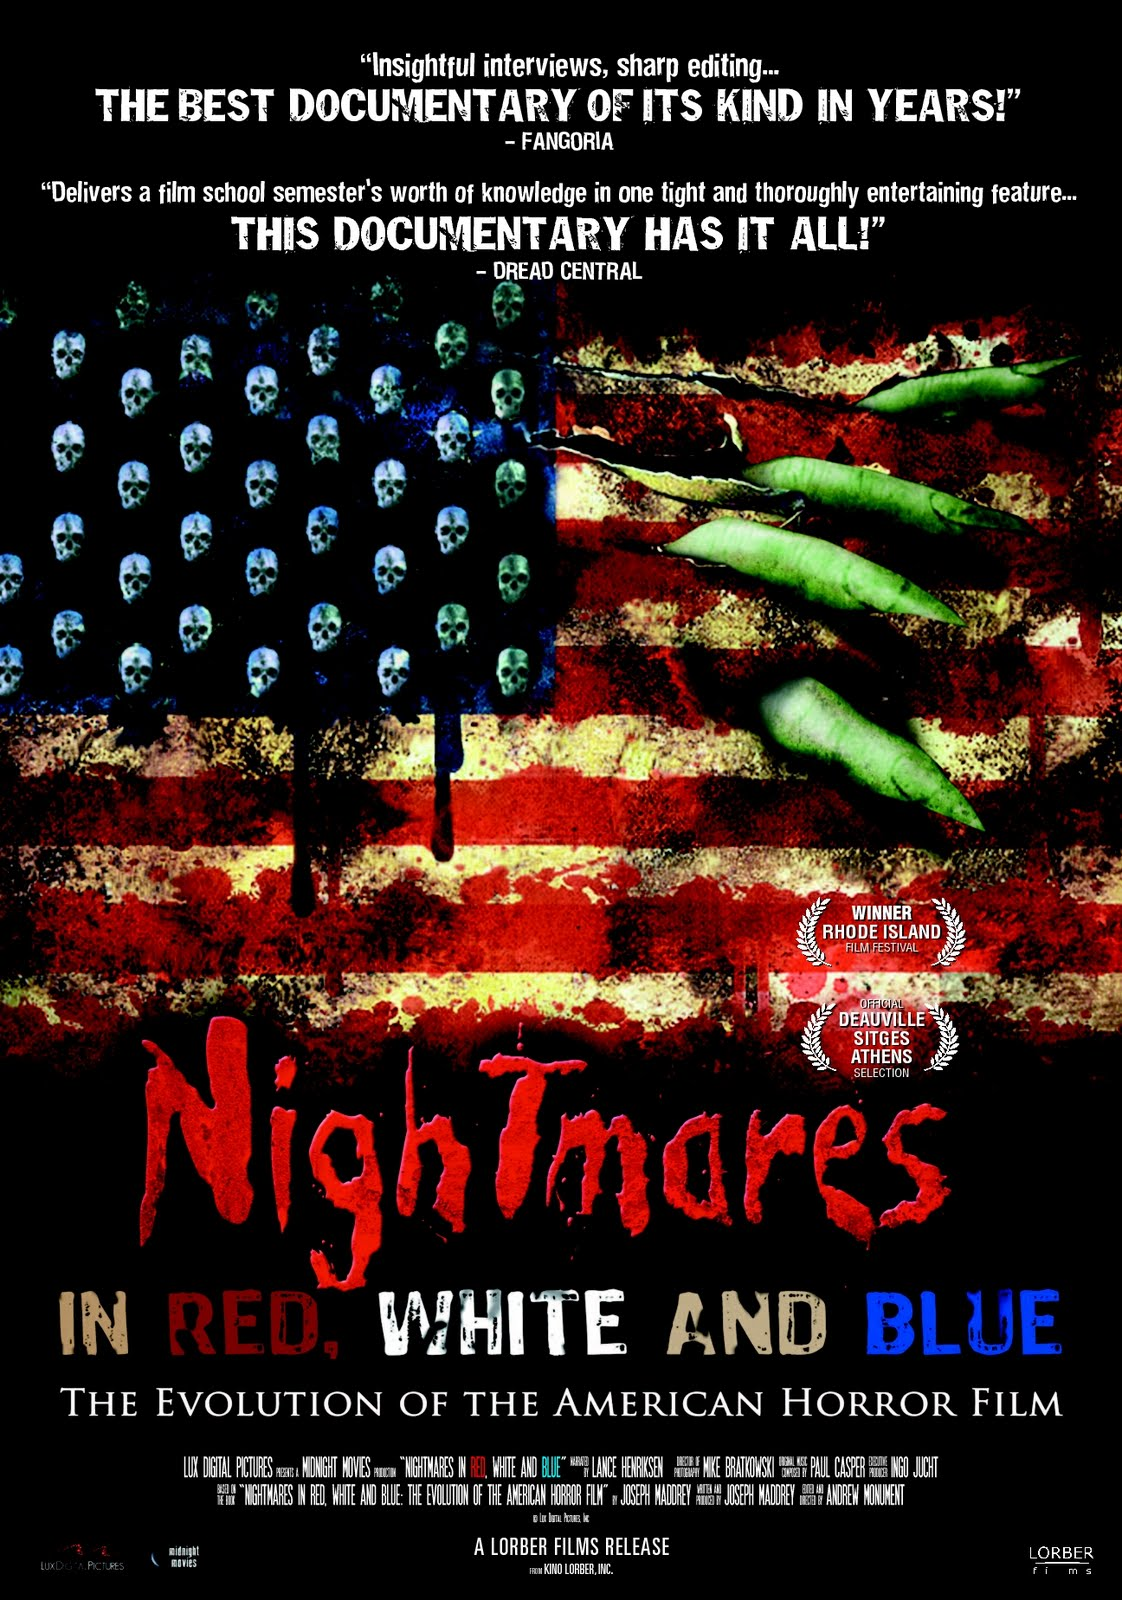 Cover of 2009 film Nightmares In Red, White & Blue